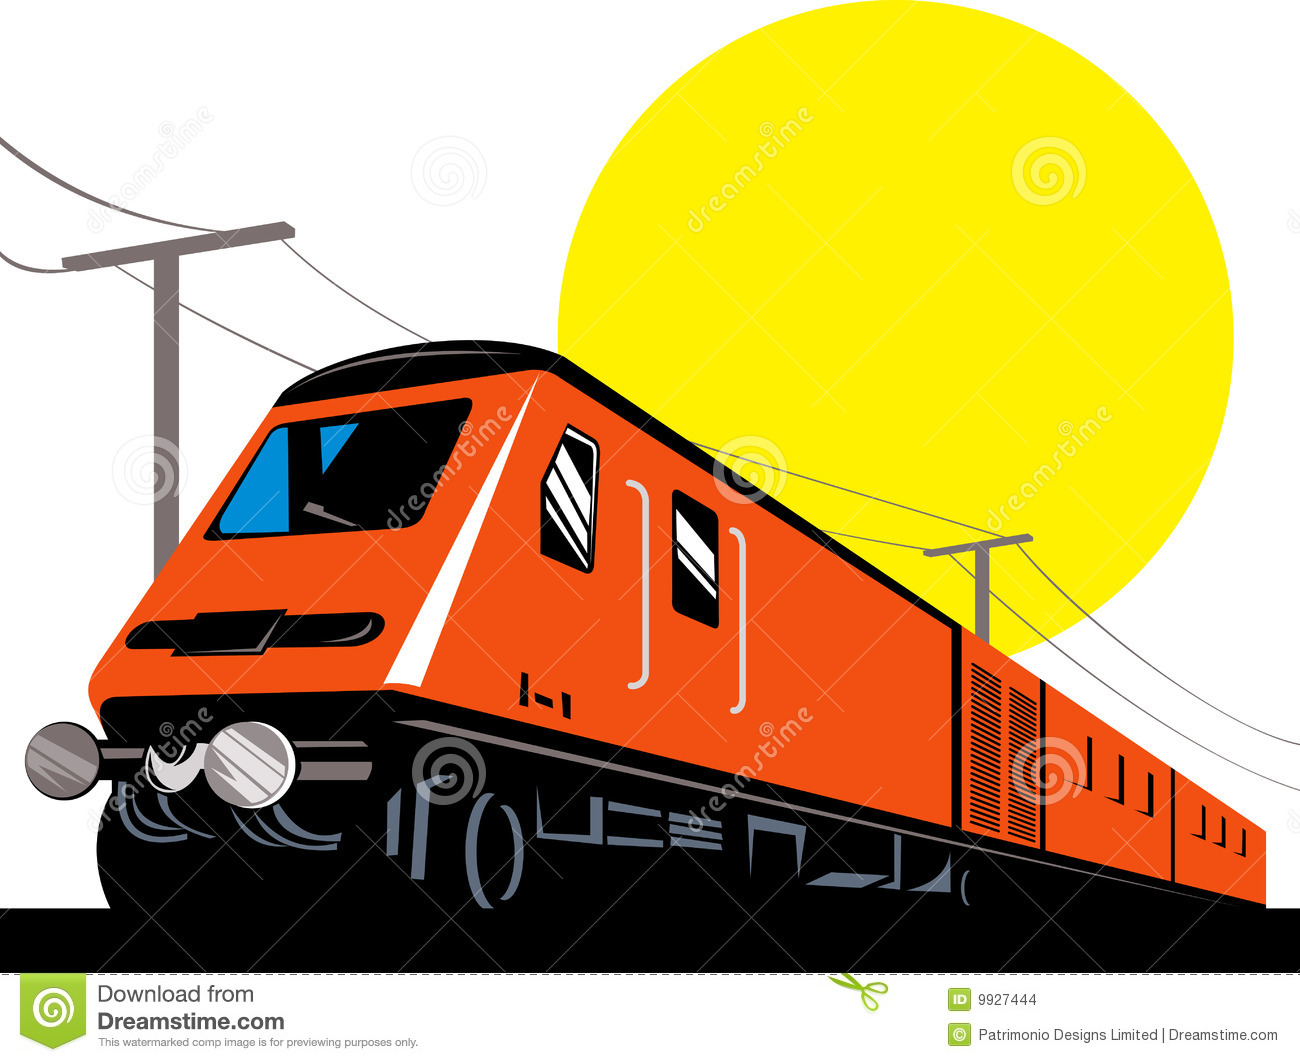 Modern train engine clip art.